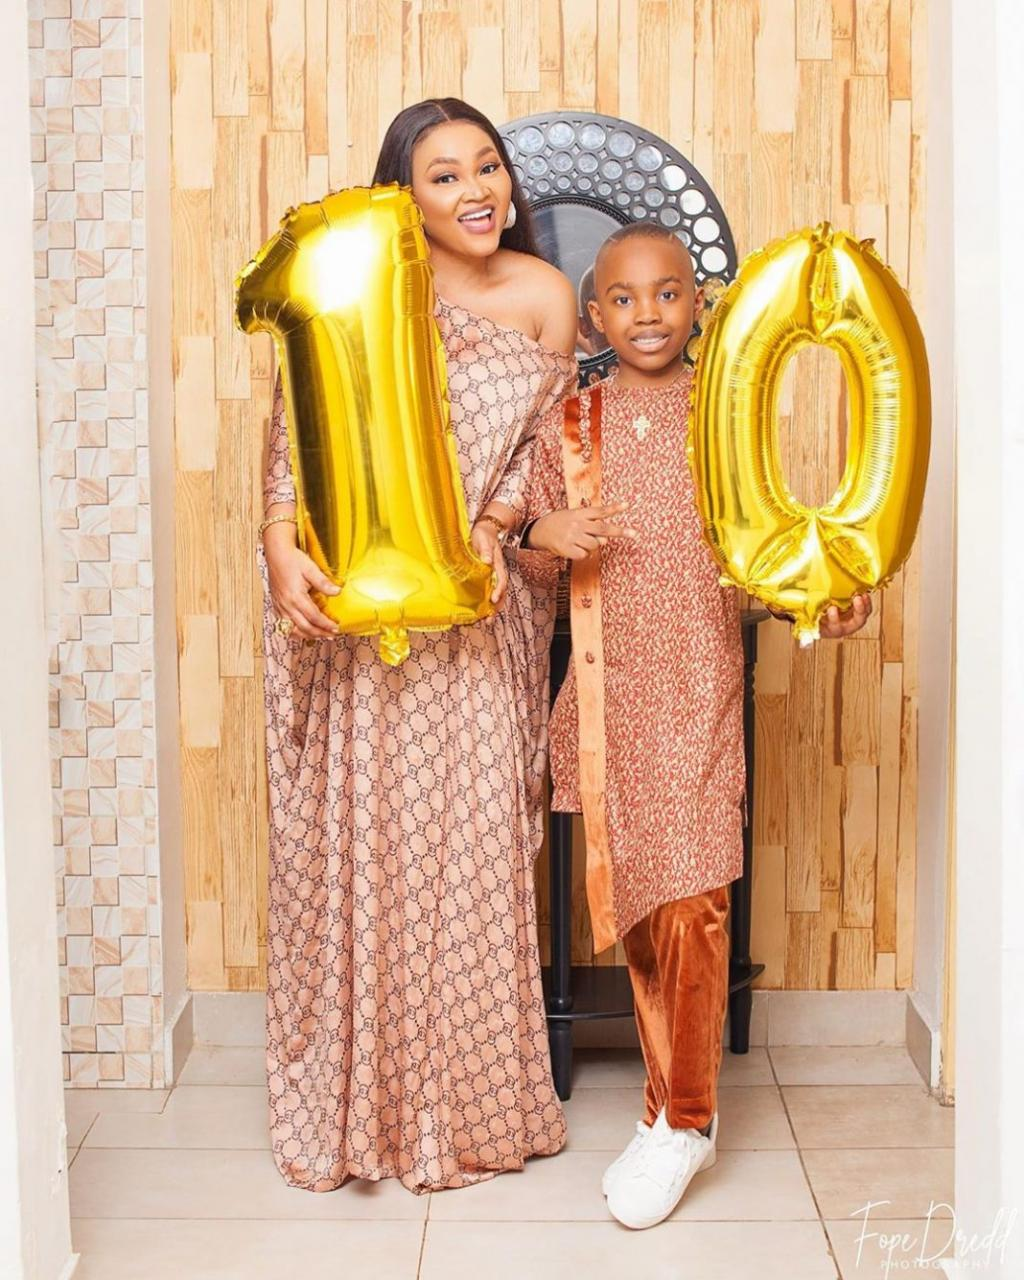 Mercy Aigbe Gushes Over Her Son As She Welcomes Him Back From School